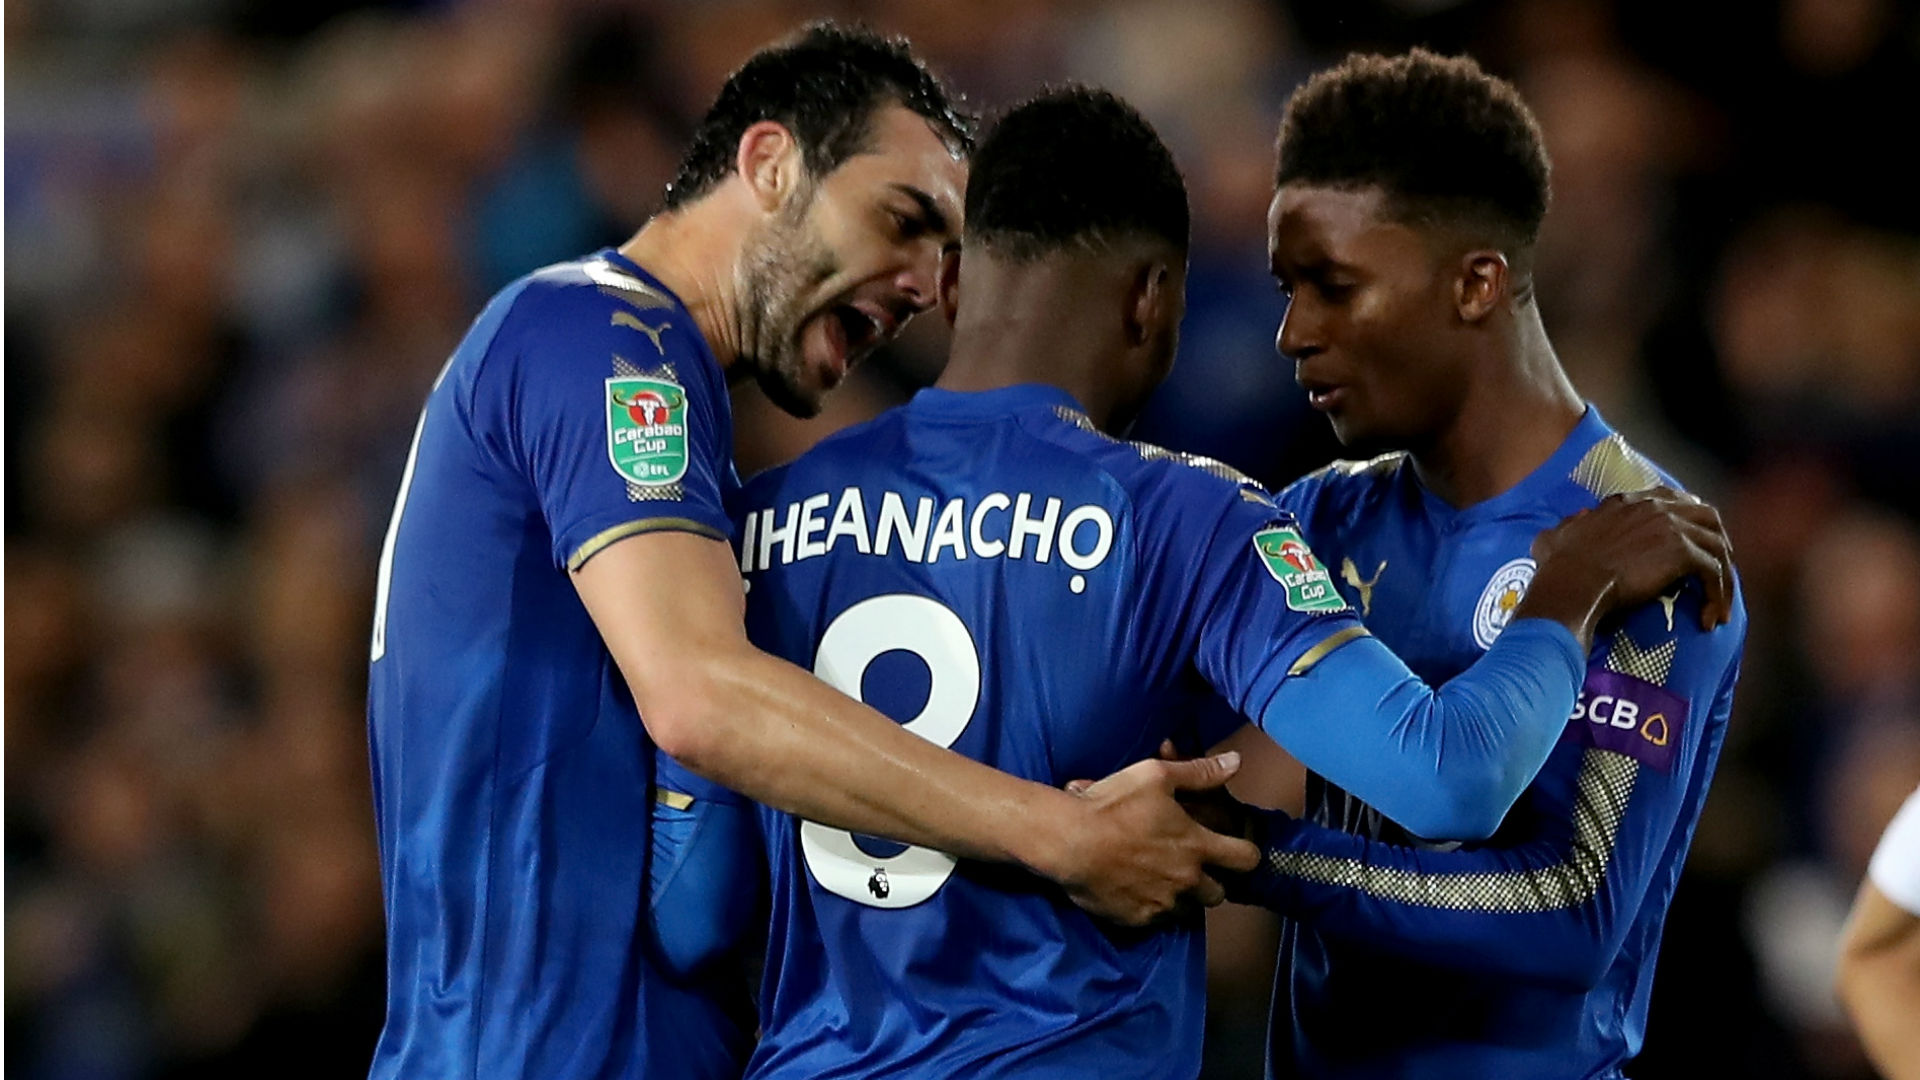 FA Cup Review: Iheanacho makes VAR history, kit confusion reigns